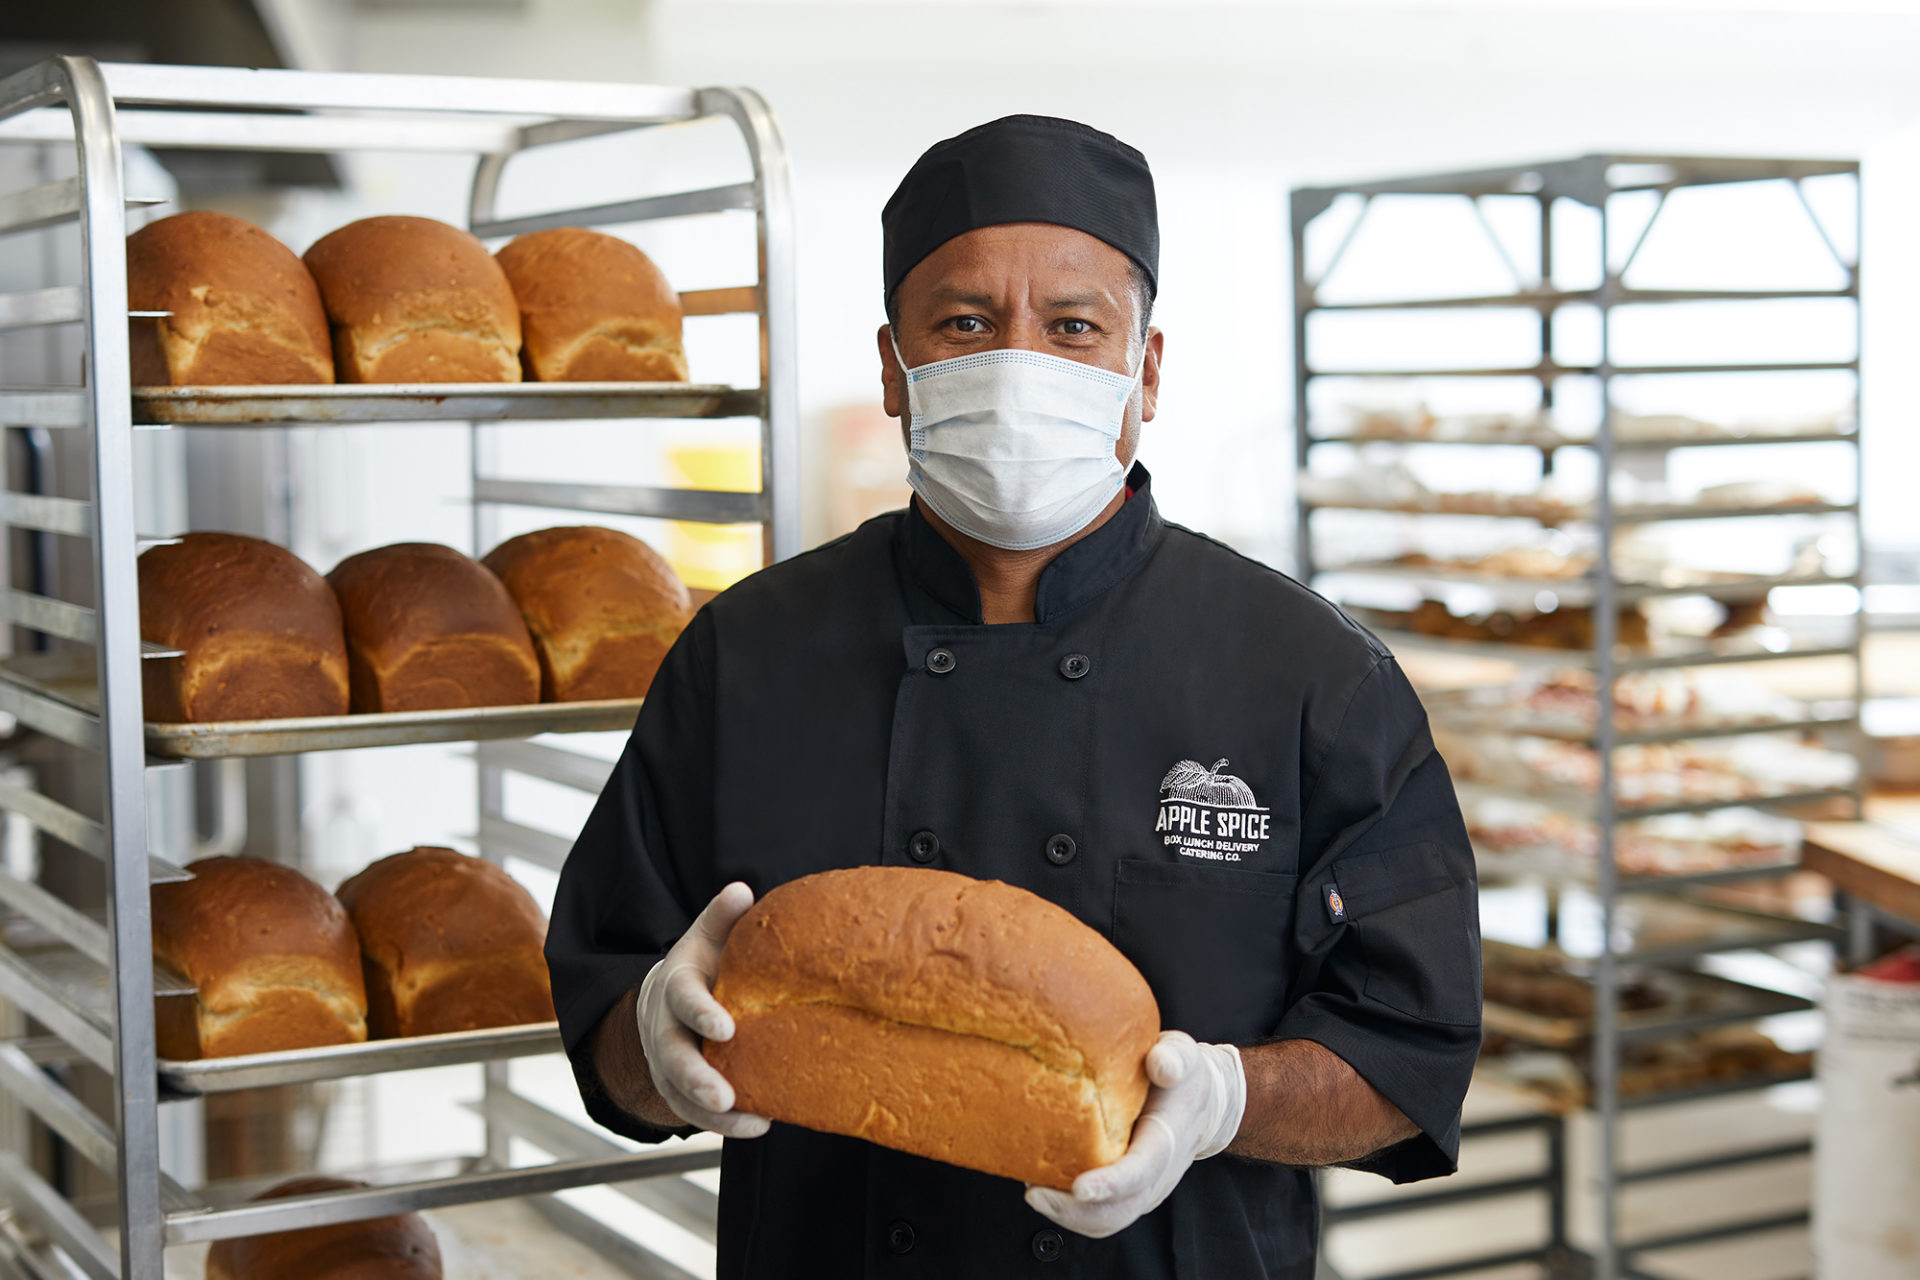 apple spice employee with fresh baked bread